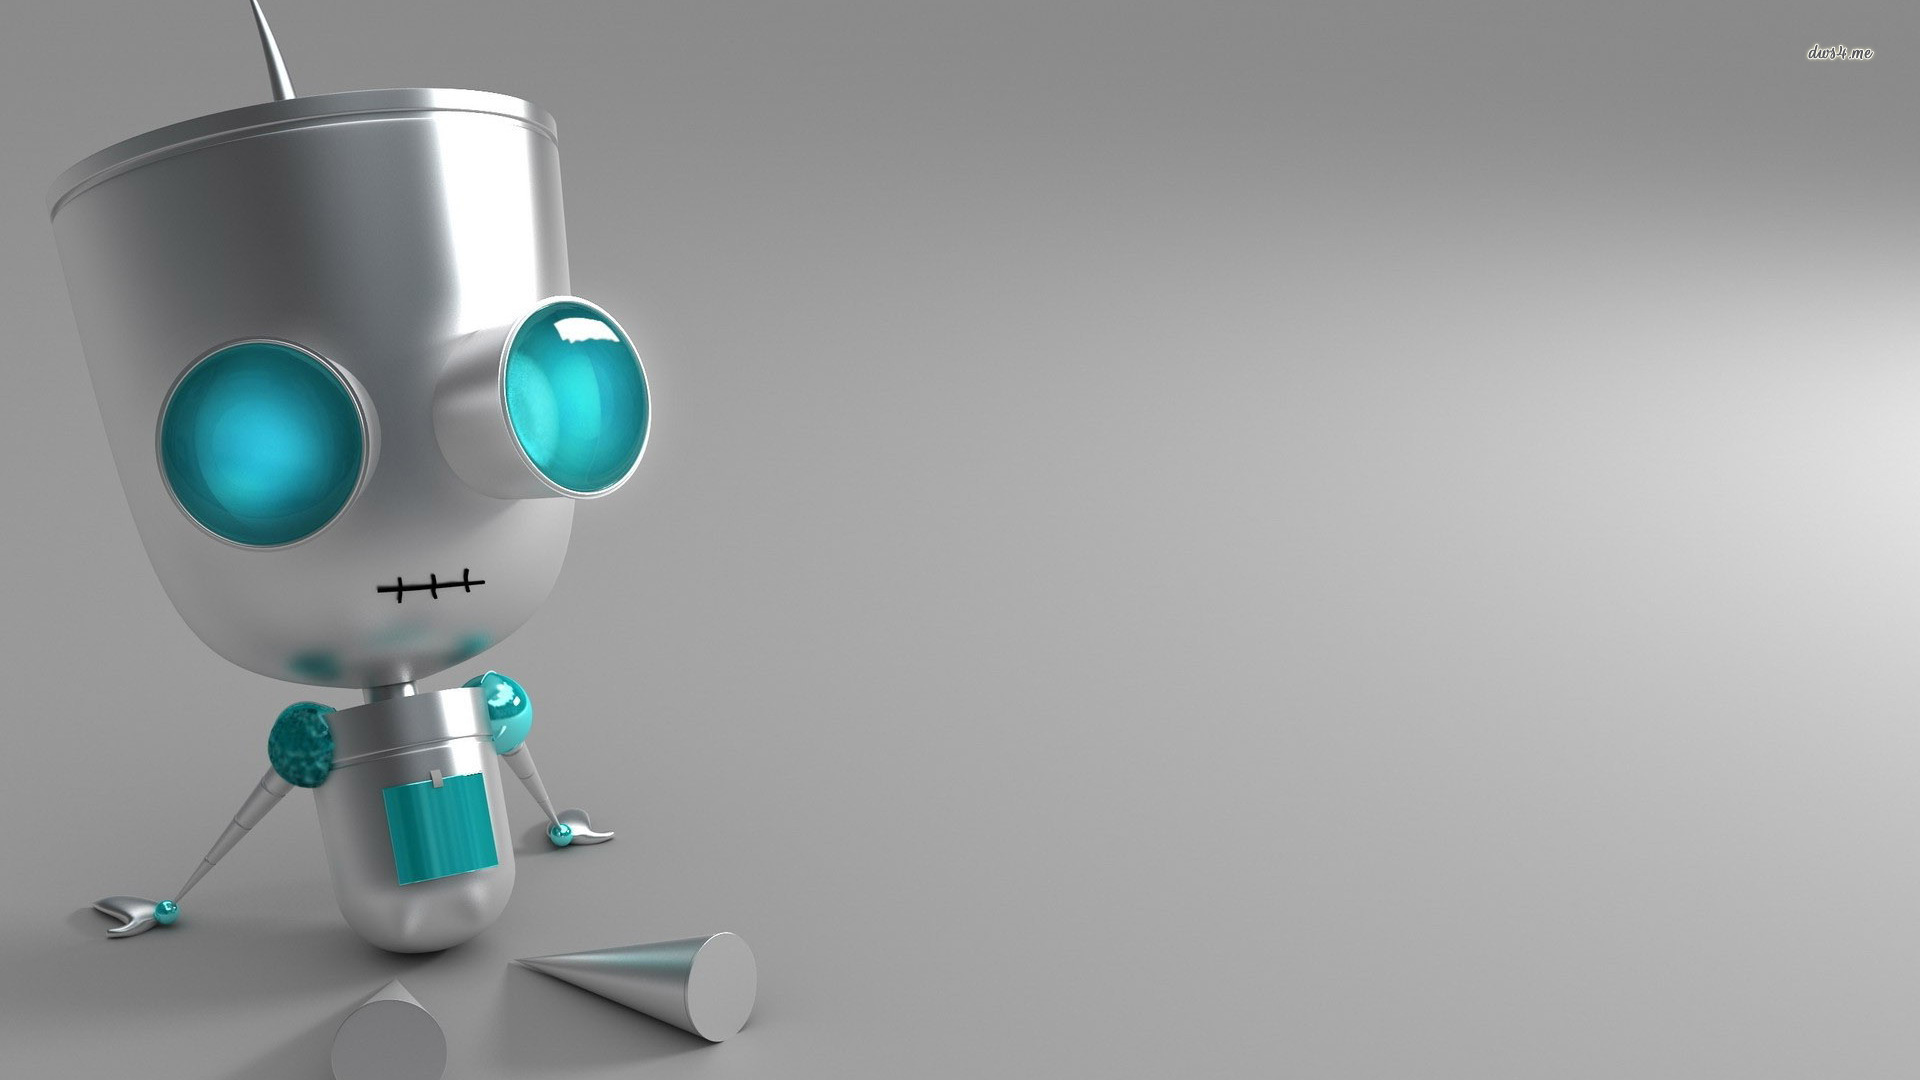 Awesome HD Robot Wallpapers Backgrounds For Download 1920x1080